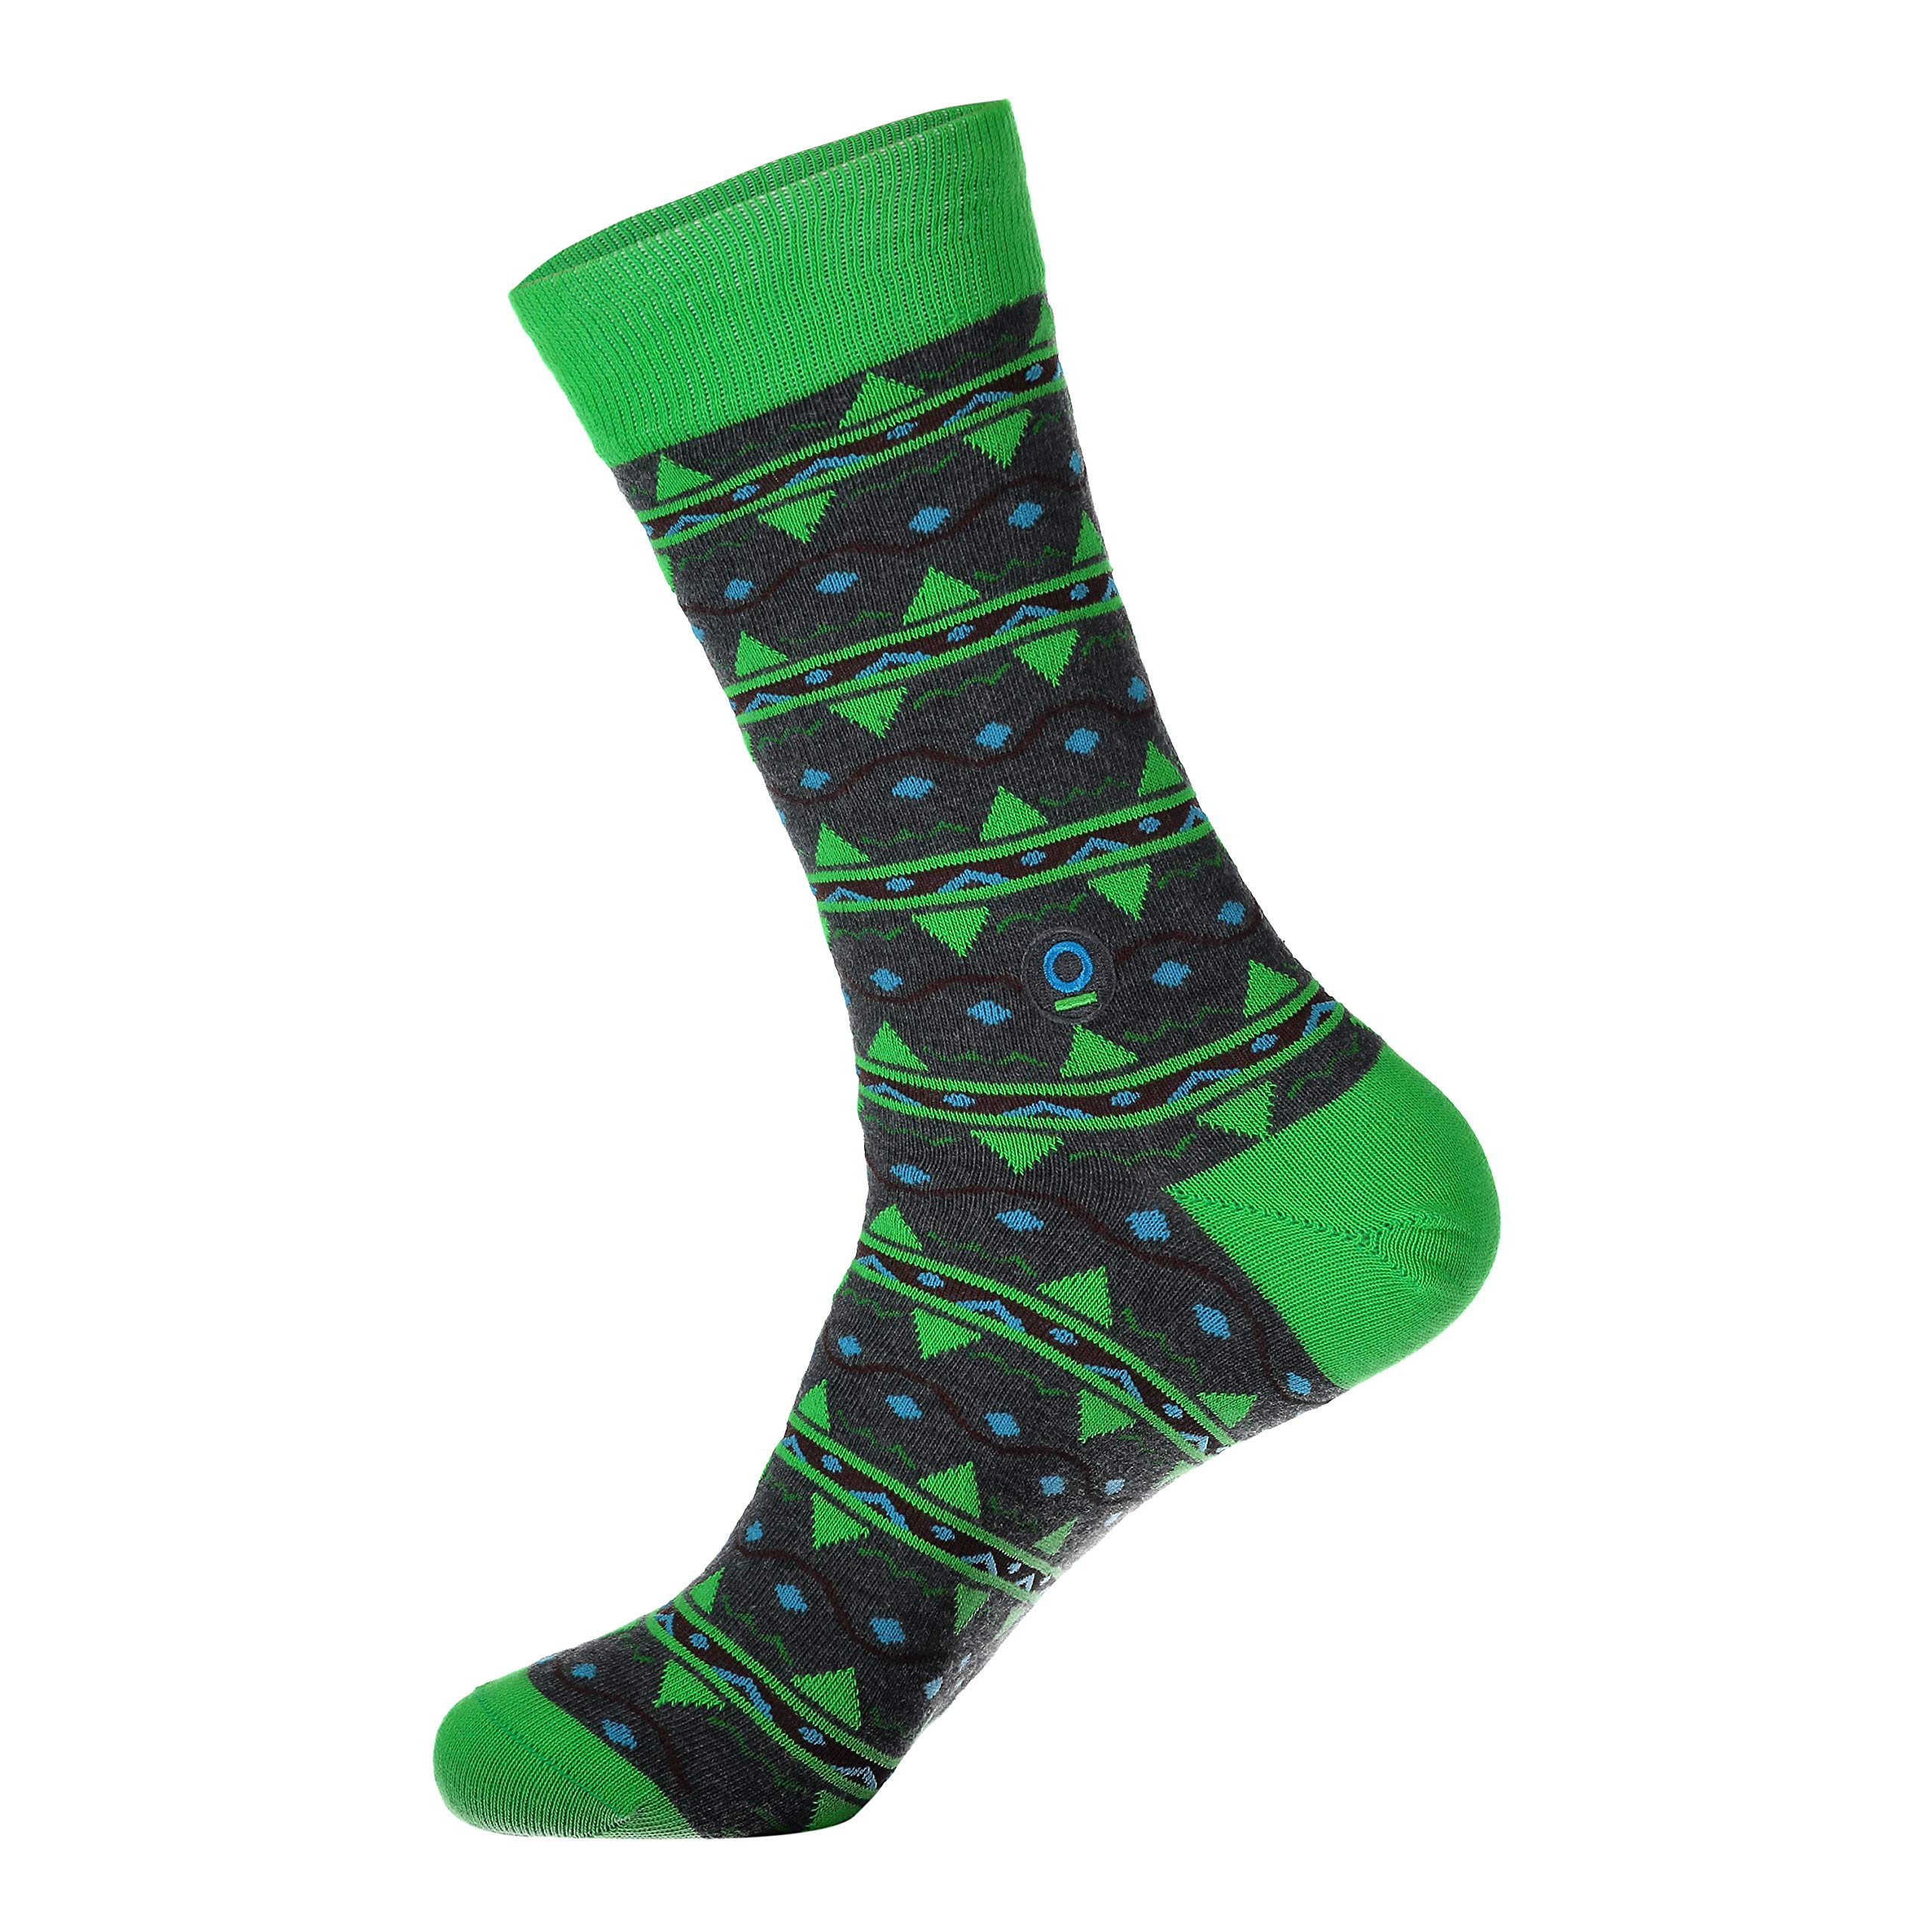 Conscious Step Men's & Women's Organic Cotton Crew Socks | Every Pair Gives Back